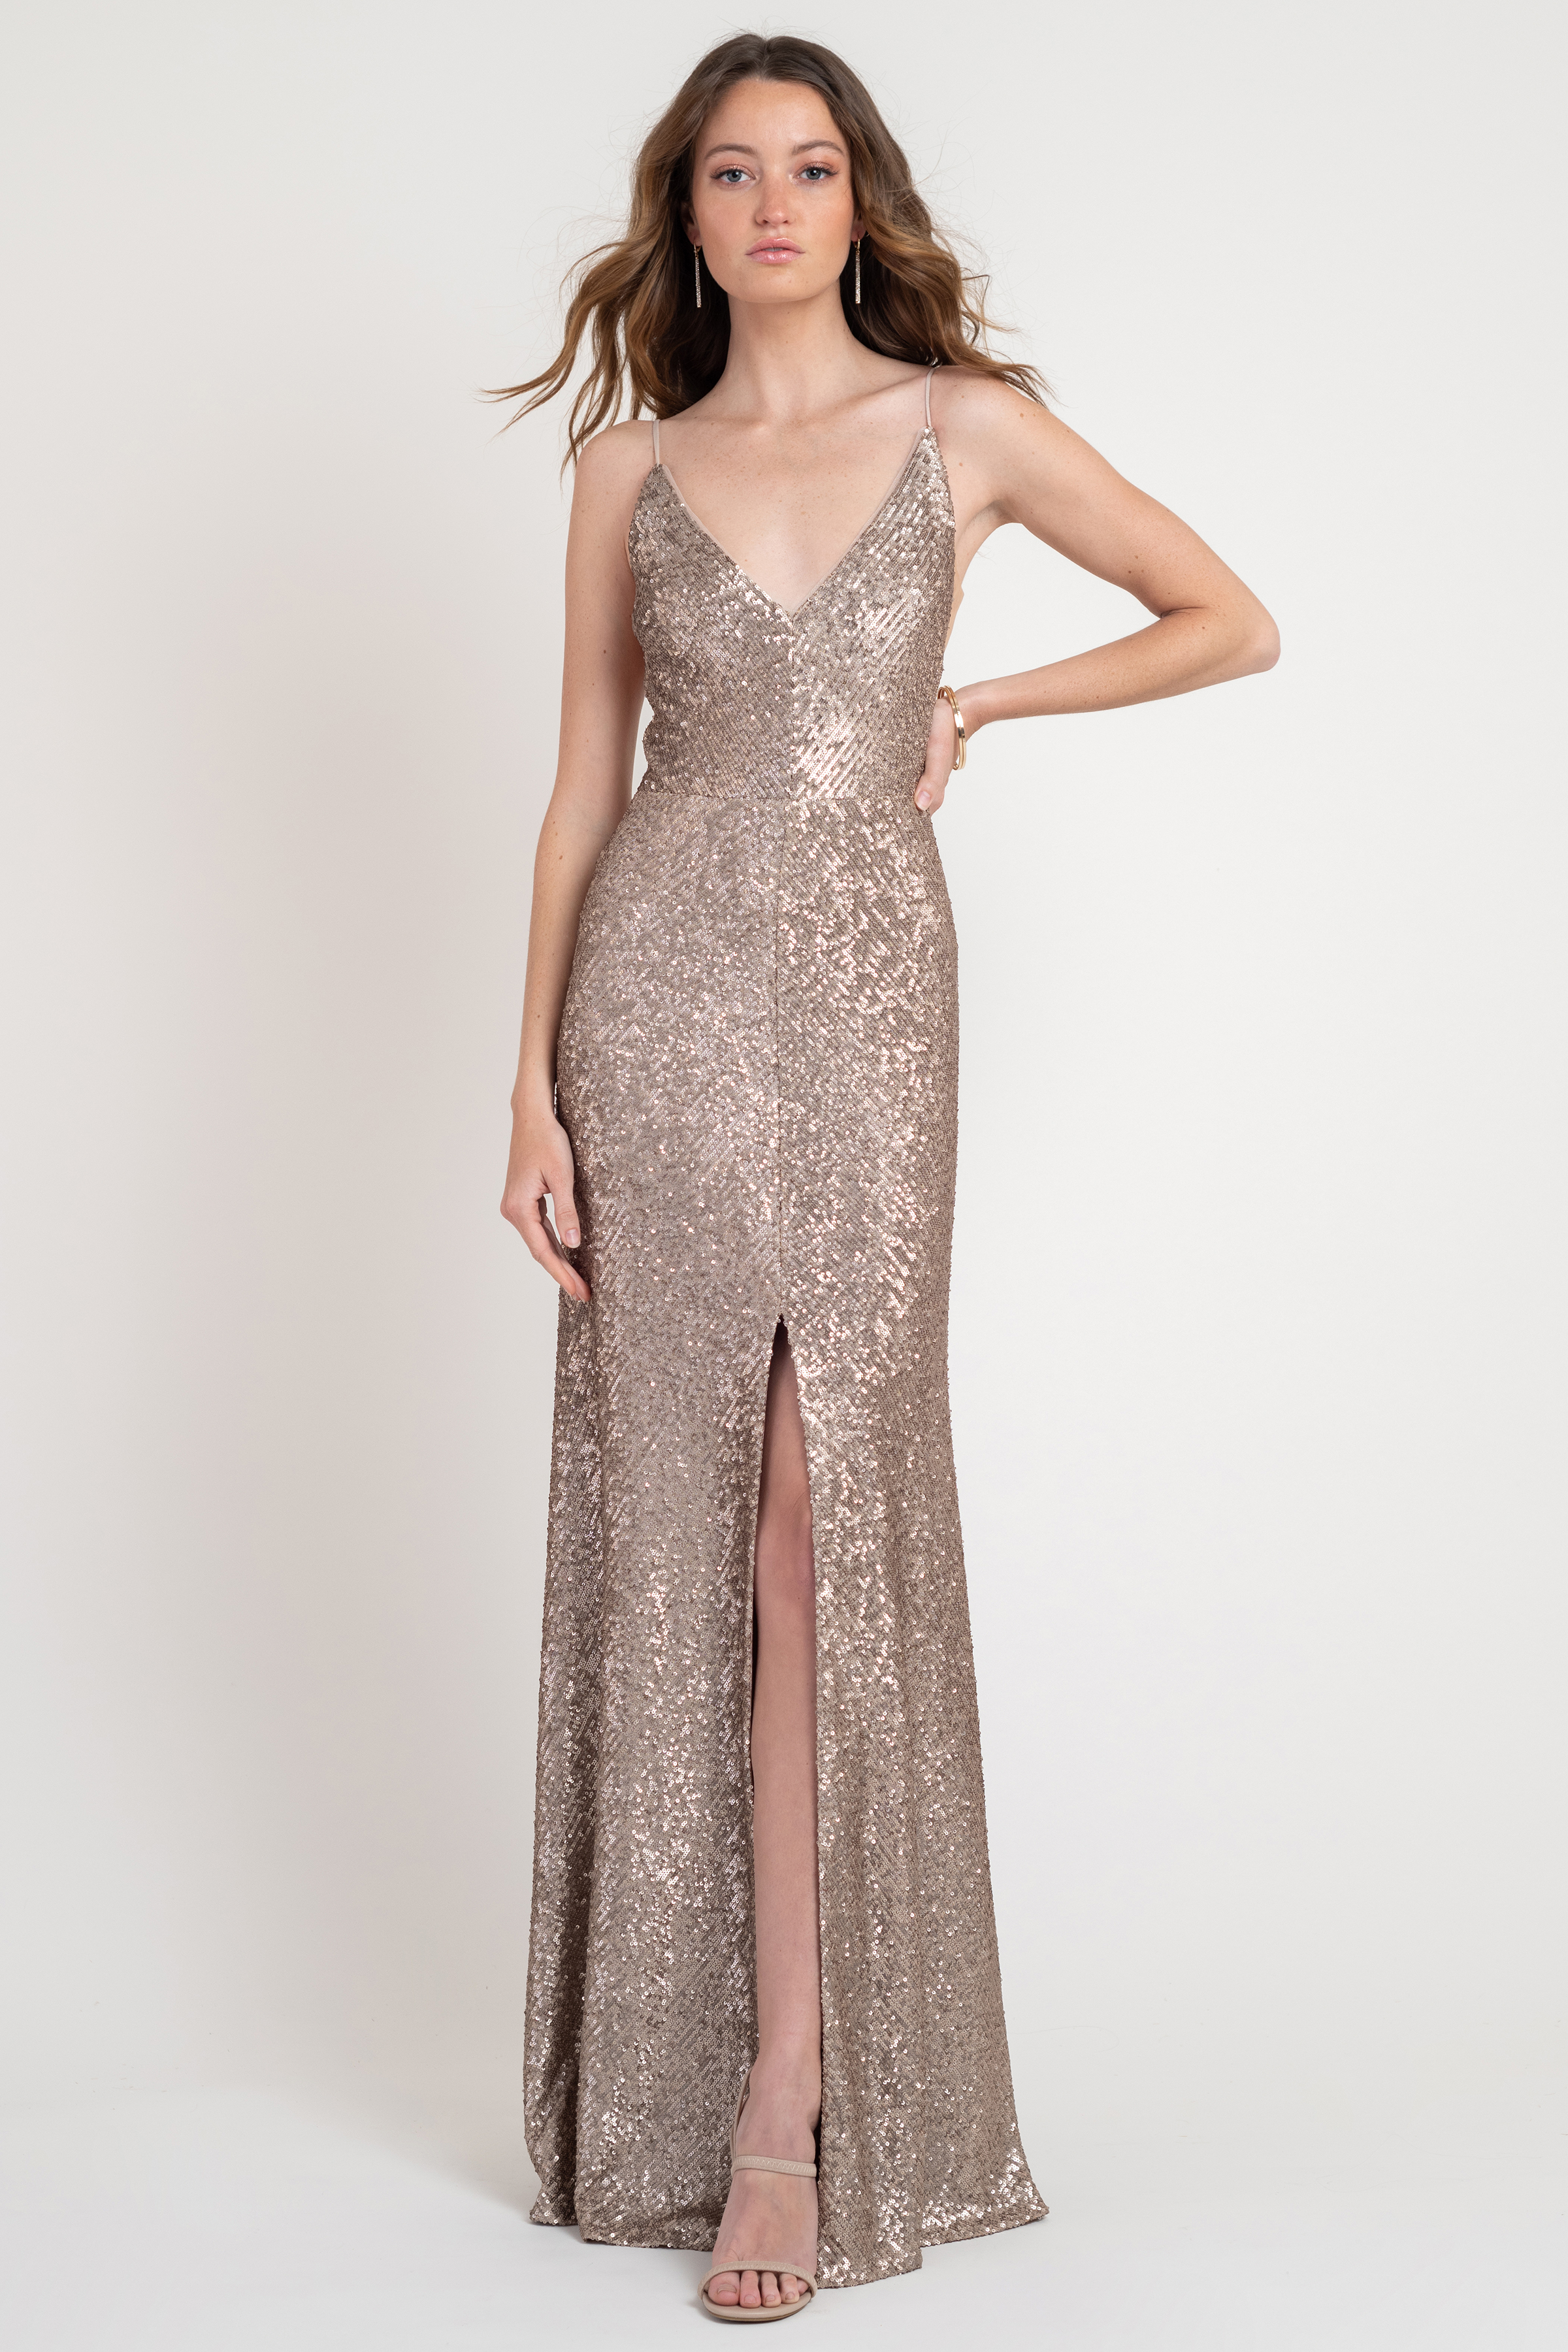 Don't be afraid to go glam in our fully sequin Zelda dress.Slimming illusion sidesand that sexy skirt slit! Details: V neckline Striped Sequin A line Skirt Slit Illusion tulle side gussets slim your sides Full length Fully lined Invisible center back zipper